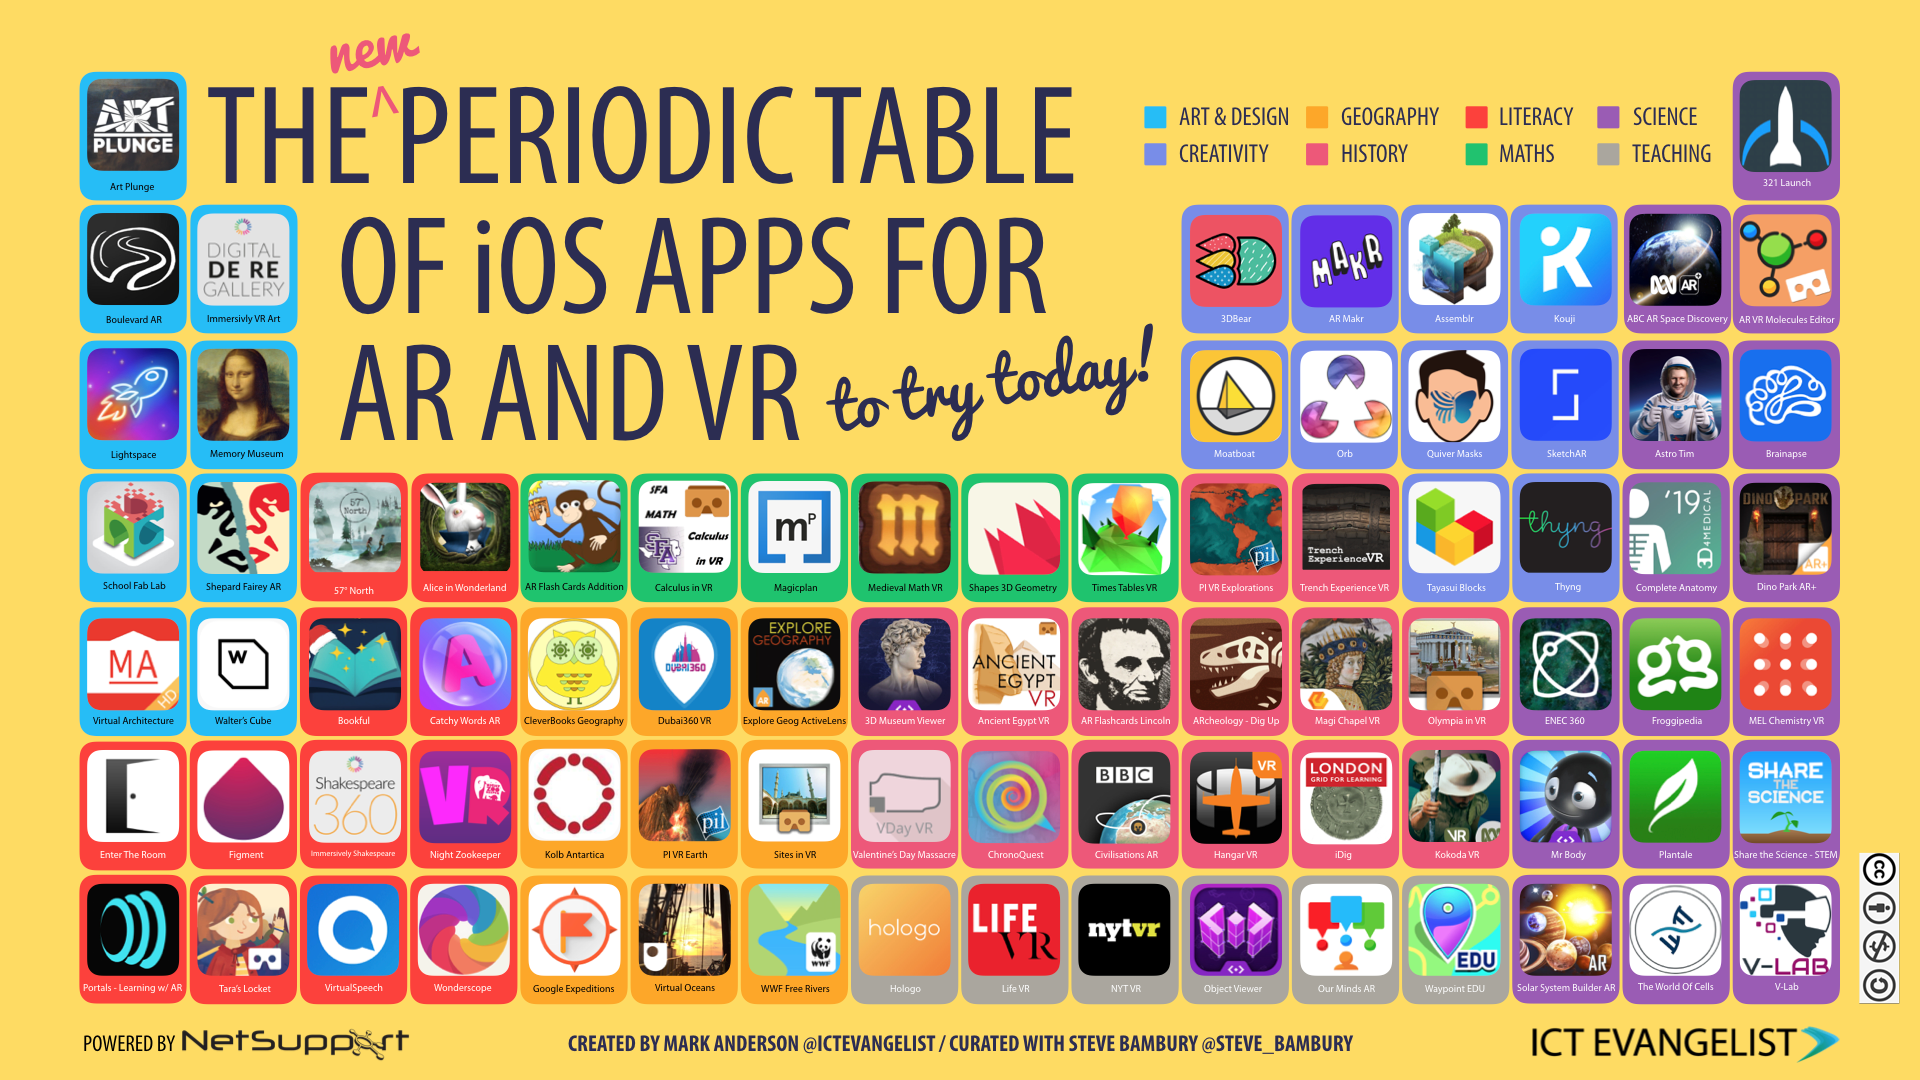 The Periodic Table of iOS Apps for AR and VR 2019